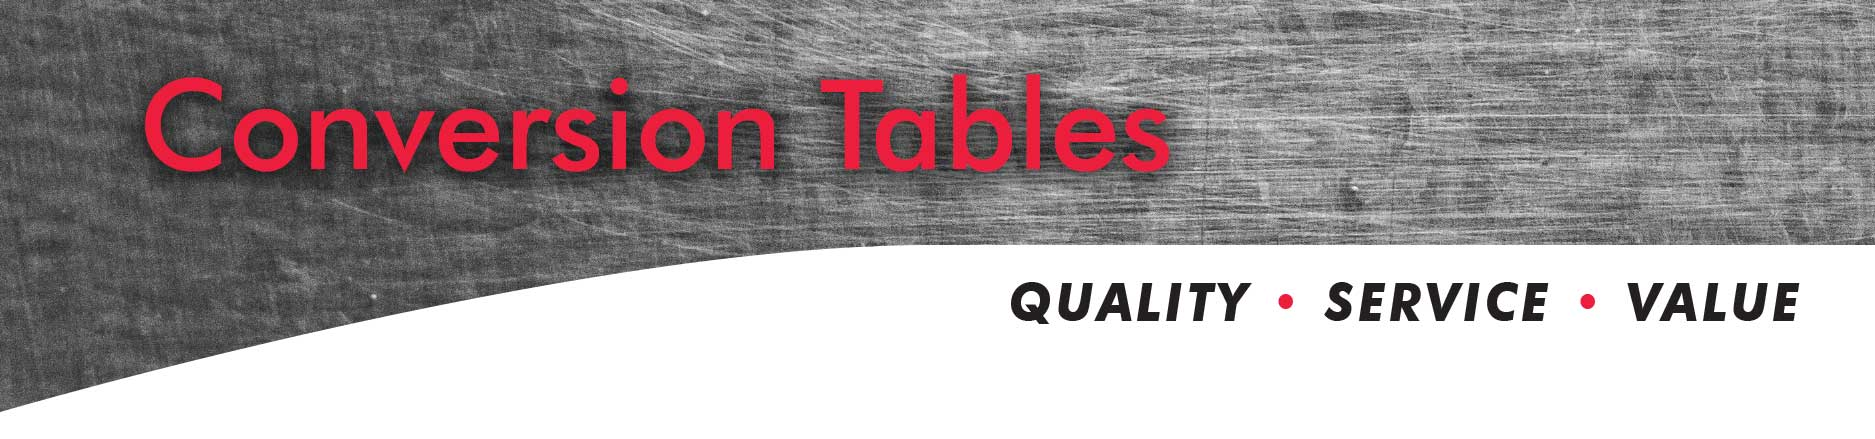 Techflex calculators and conversion tables conversion calculator banner nvjuhfo Image collections